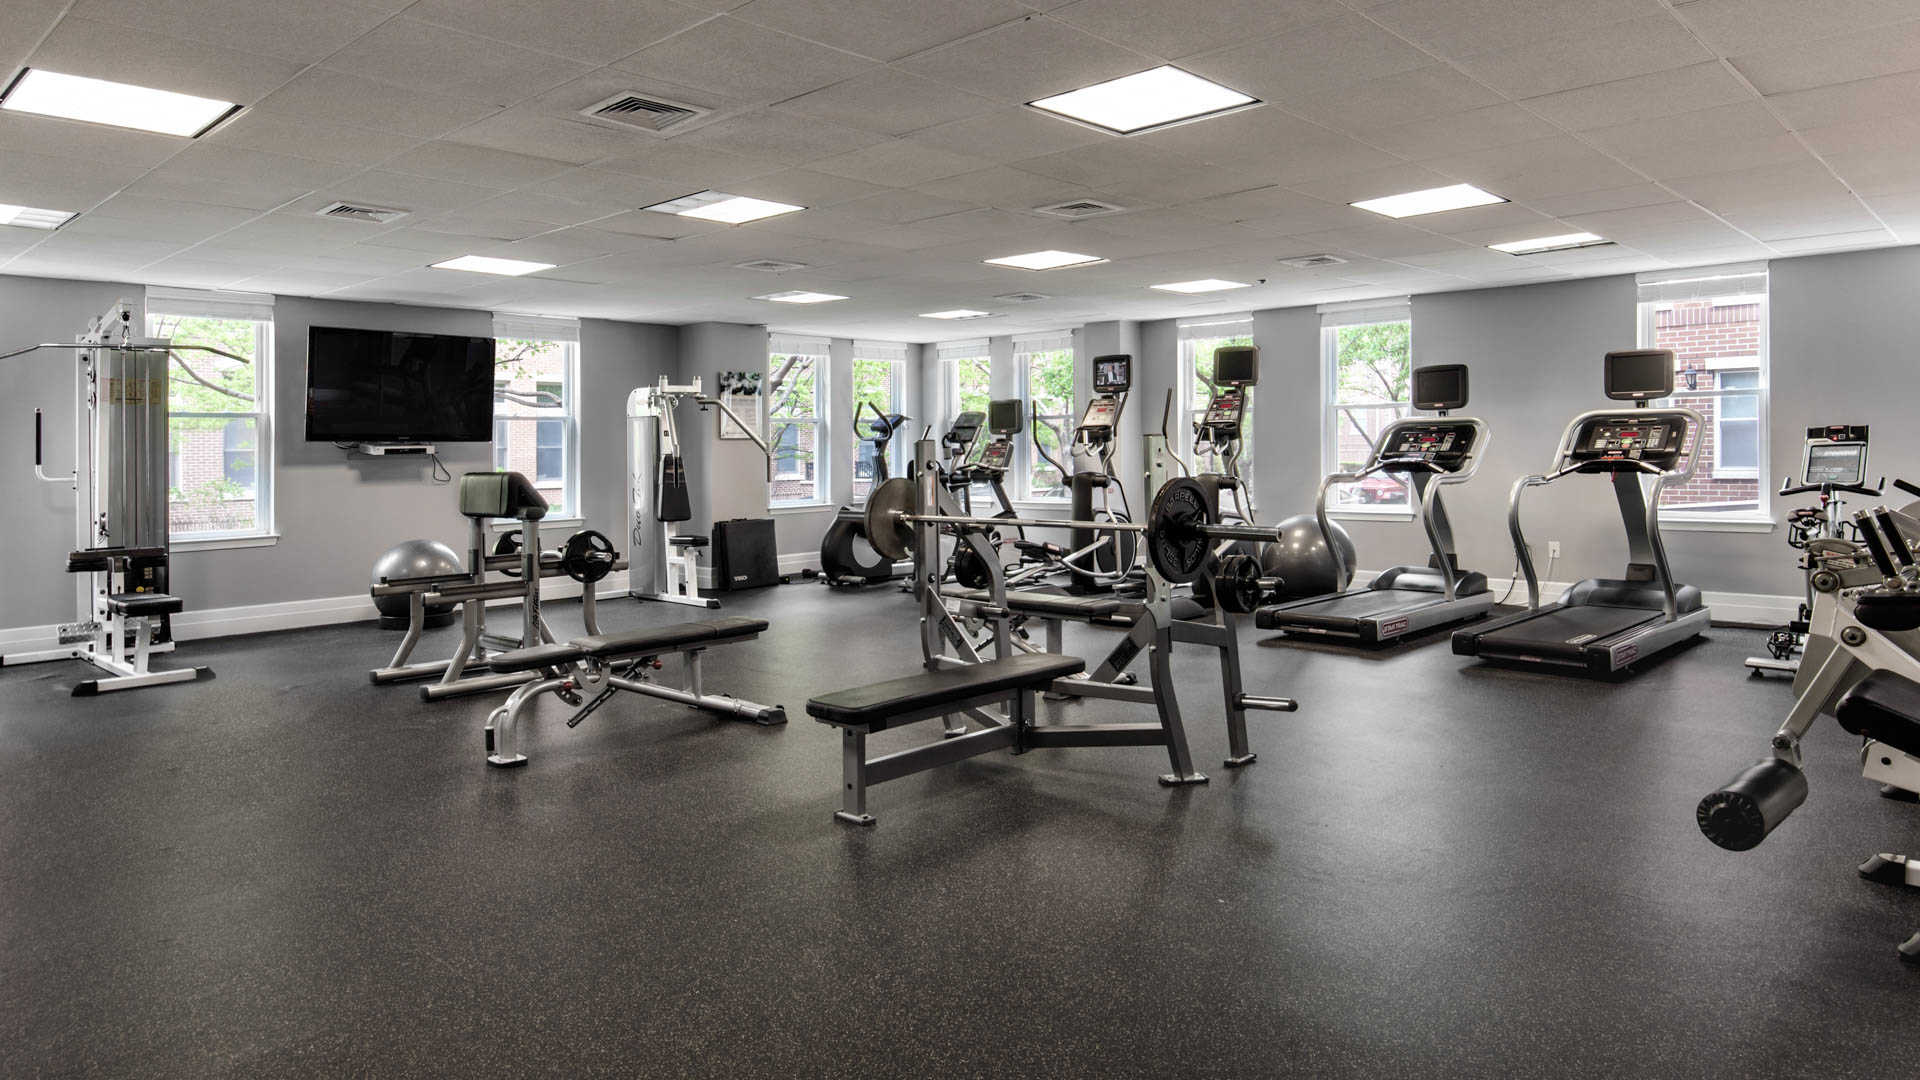 Hudson point apartments fitness center